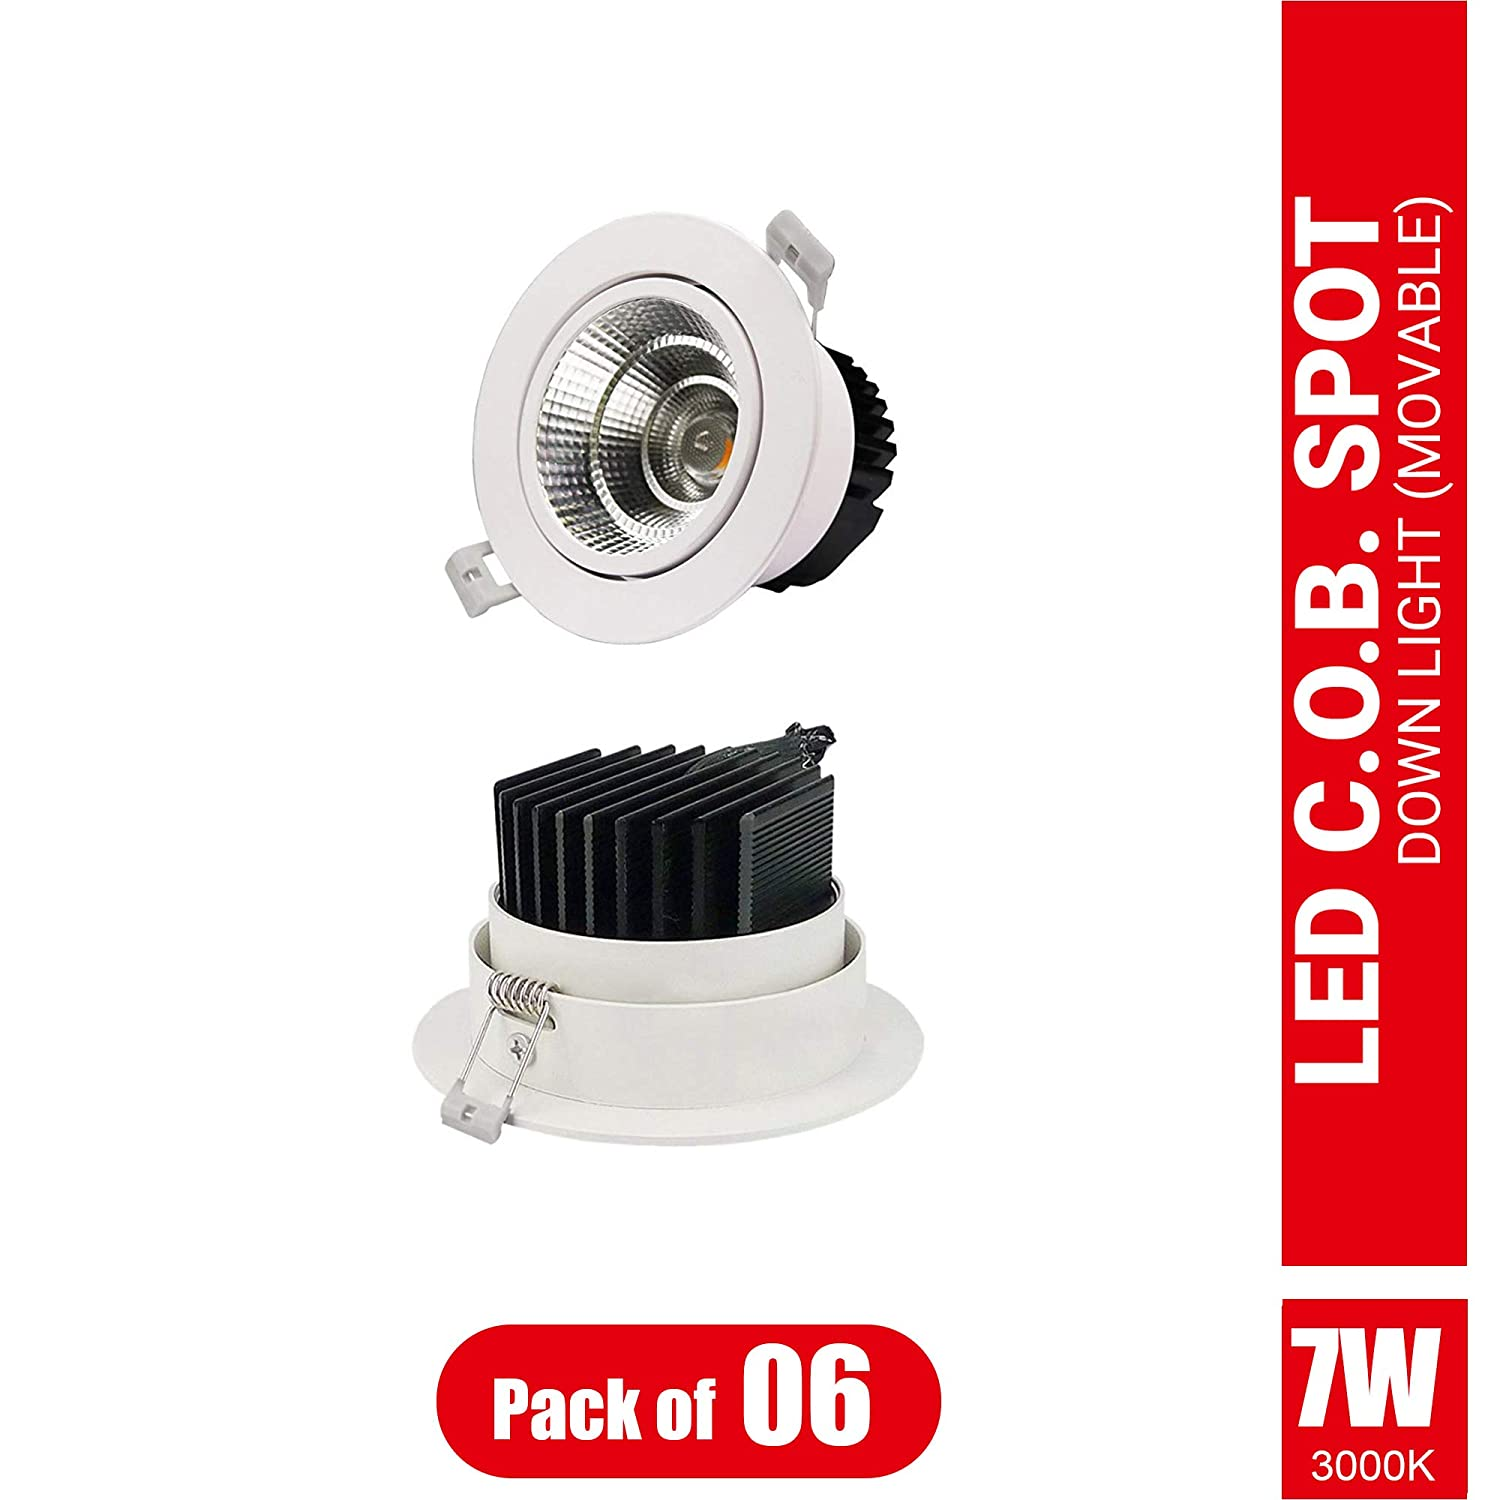 Imee Extra Bright Movable COB Down Light, 7 Watts, Toughened